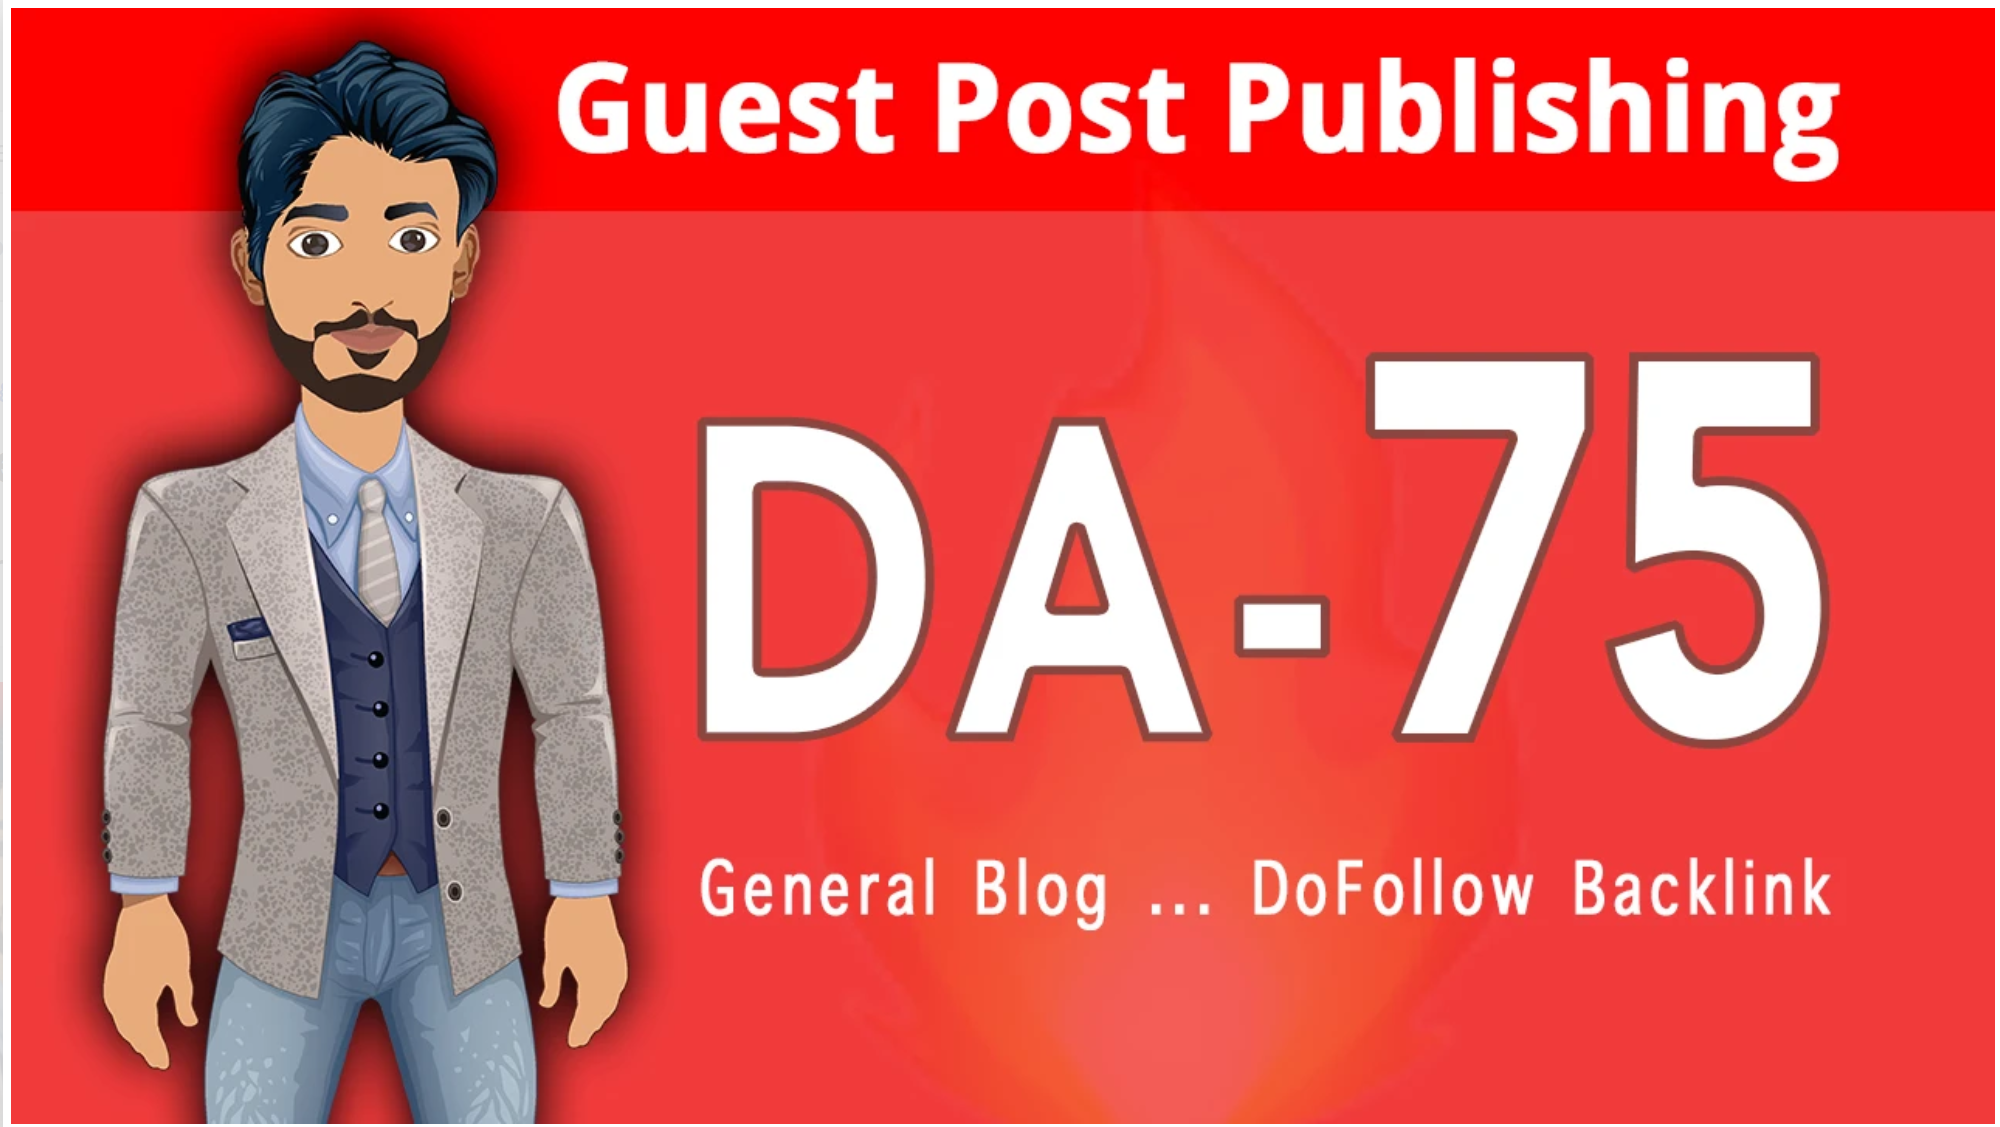 guest post on da 75 blog within 24 hours